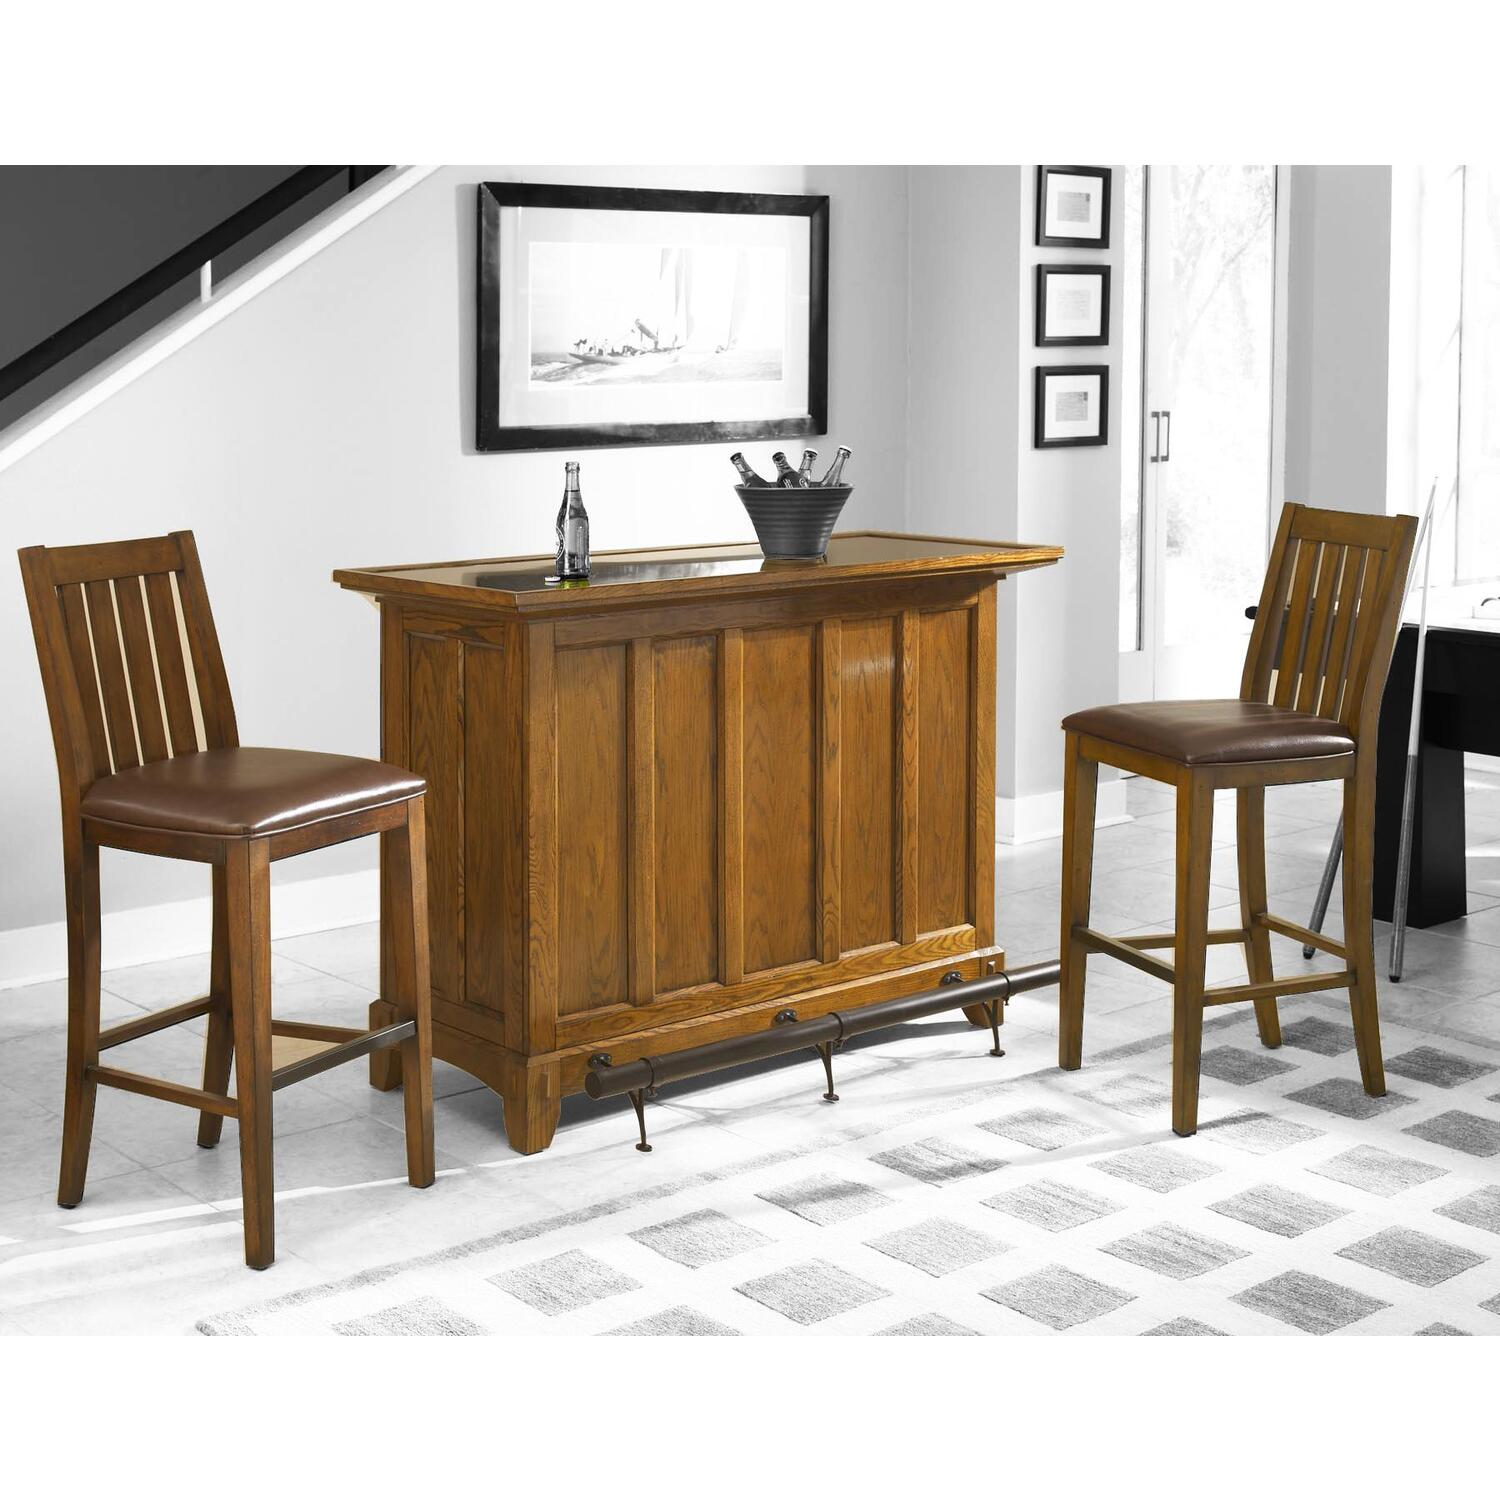 Home Styles Arts Craft 3pc Bar Set Bar Two Stools Distressed Oak Finish By Oj Commerce 5900